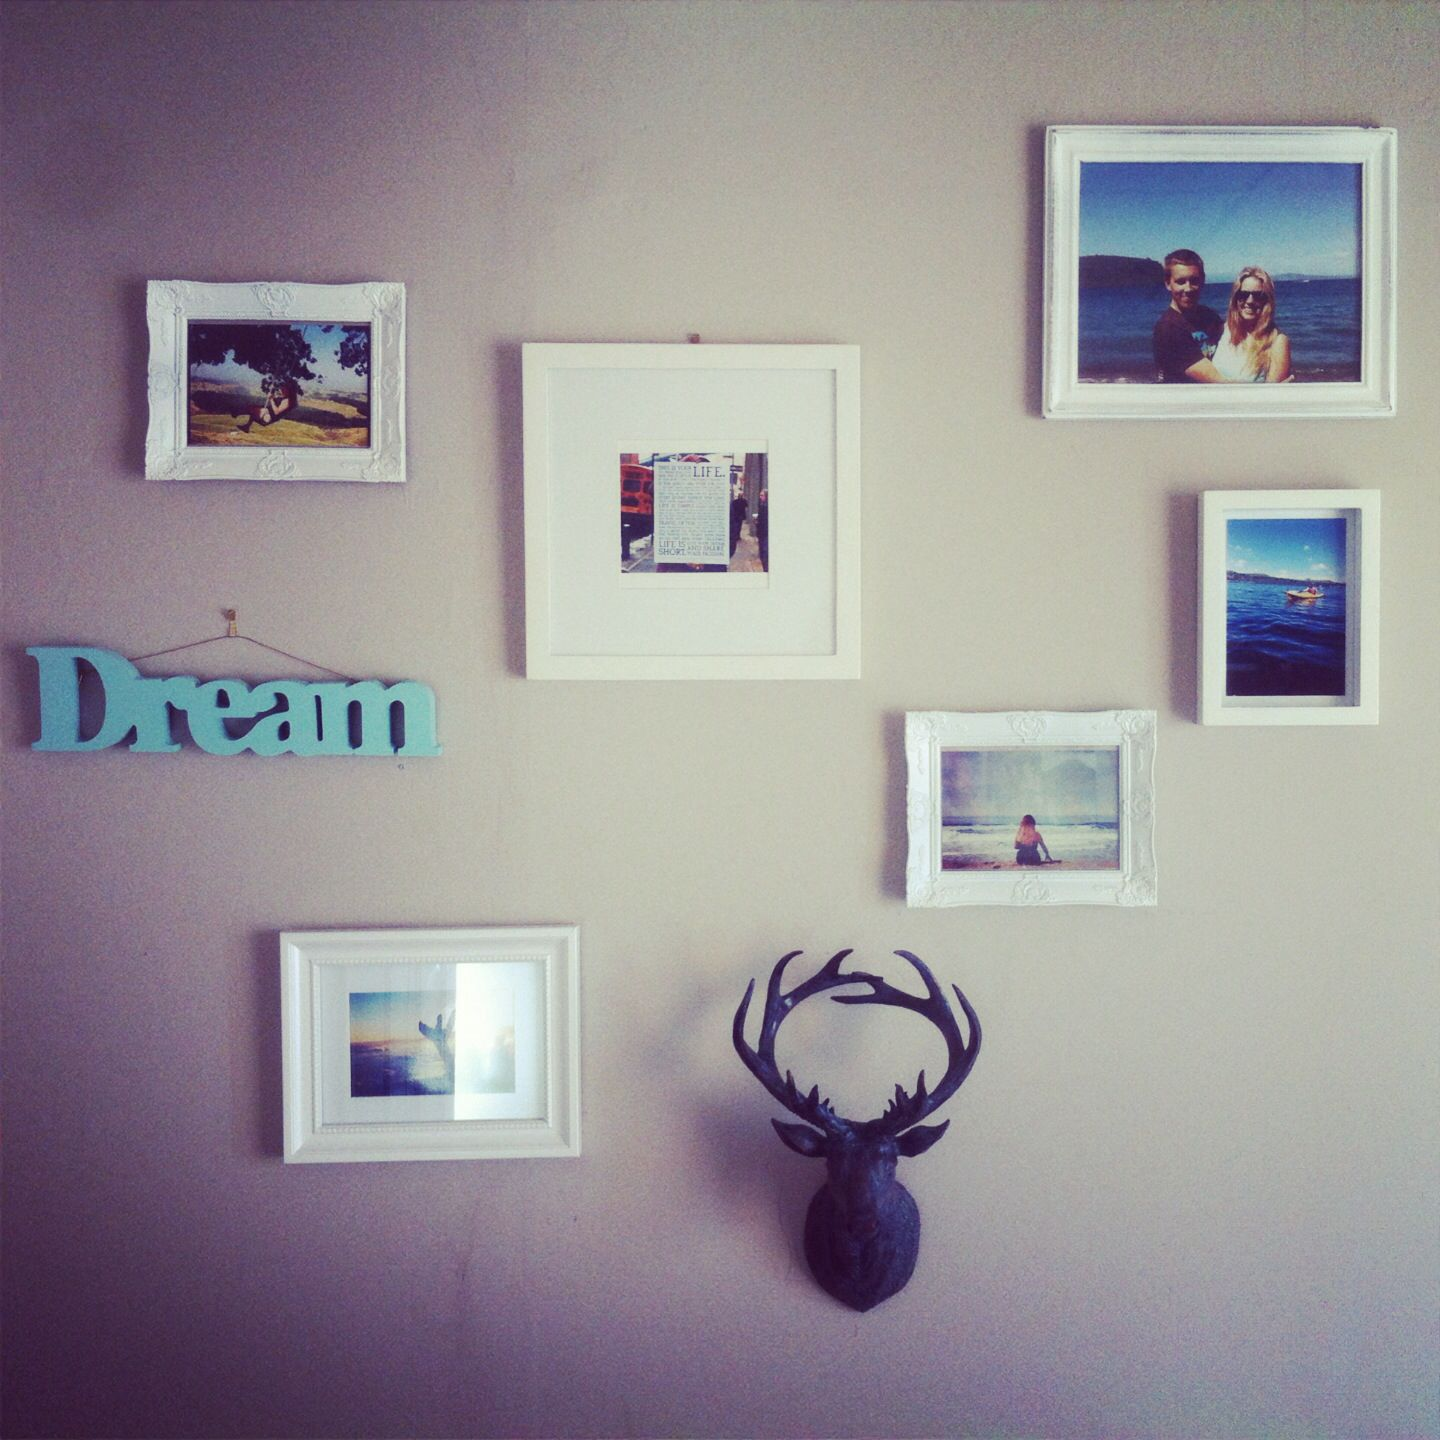 My Photo wall. Stag, dream, photos of travel.